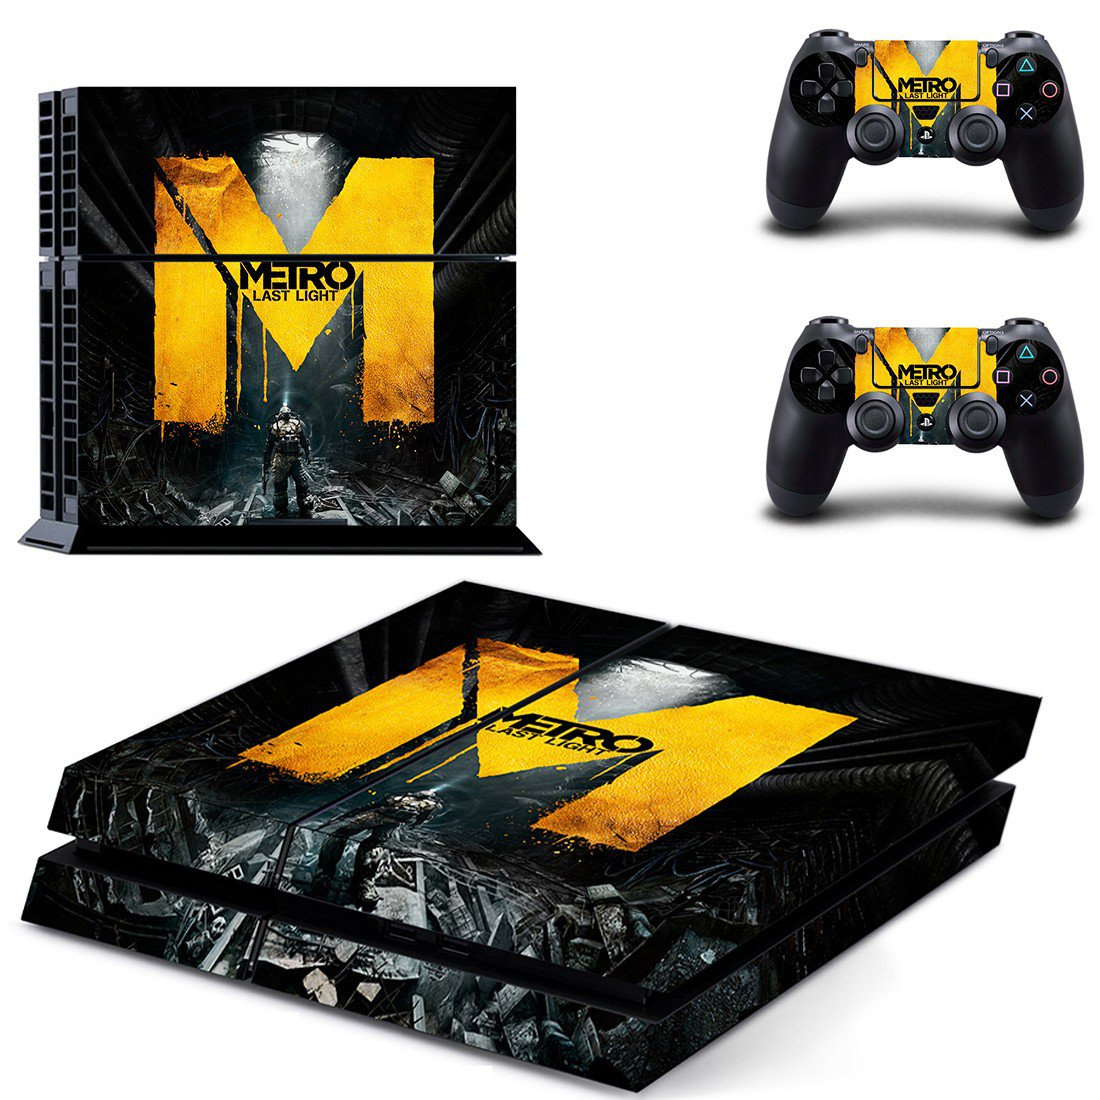 Metro Last Light ps4 skin decal for console and controllers